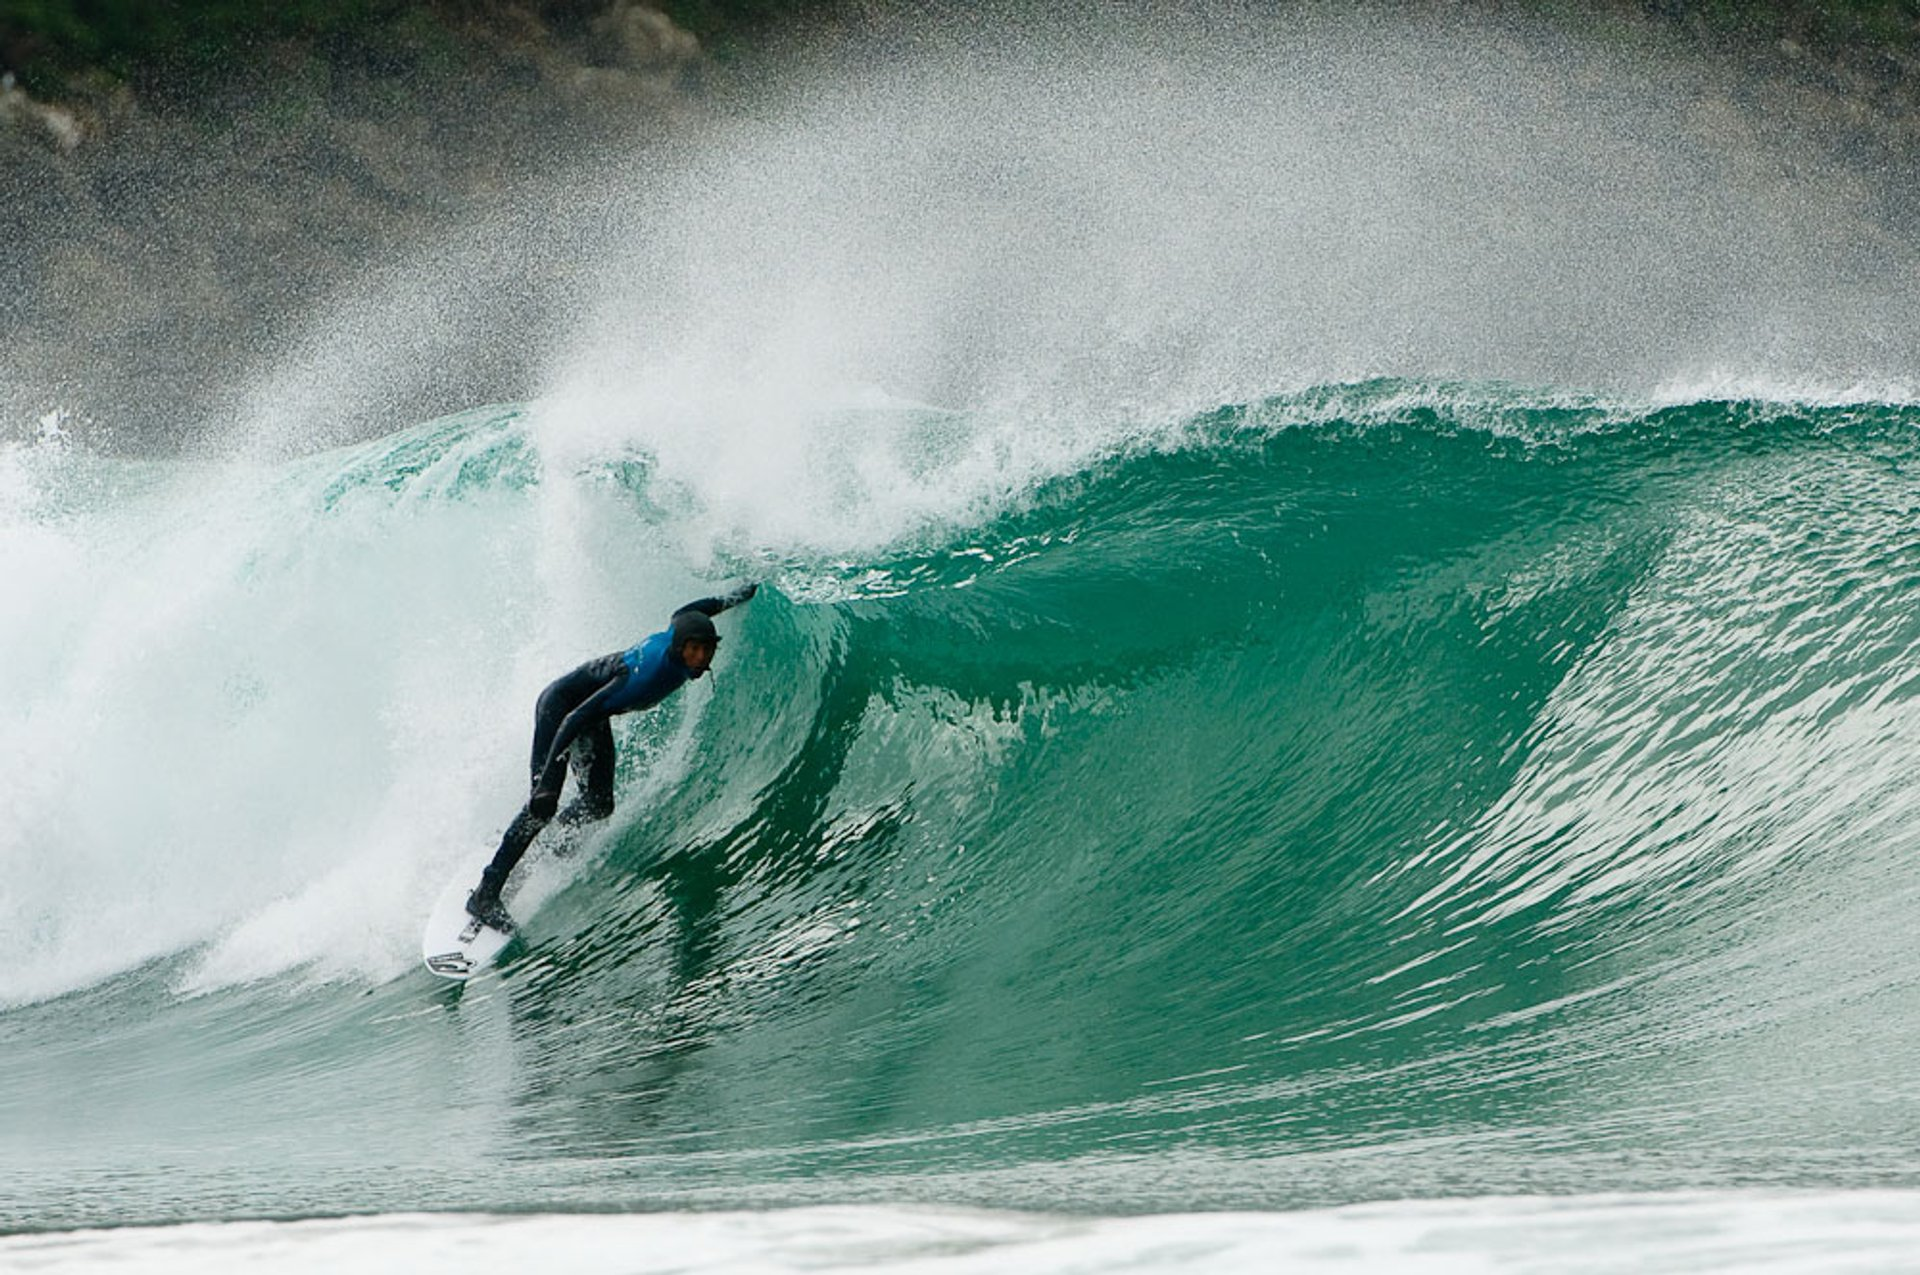 Surfing in New Zealand 2020 - Best Time